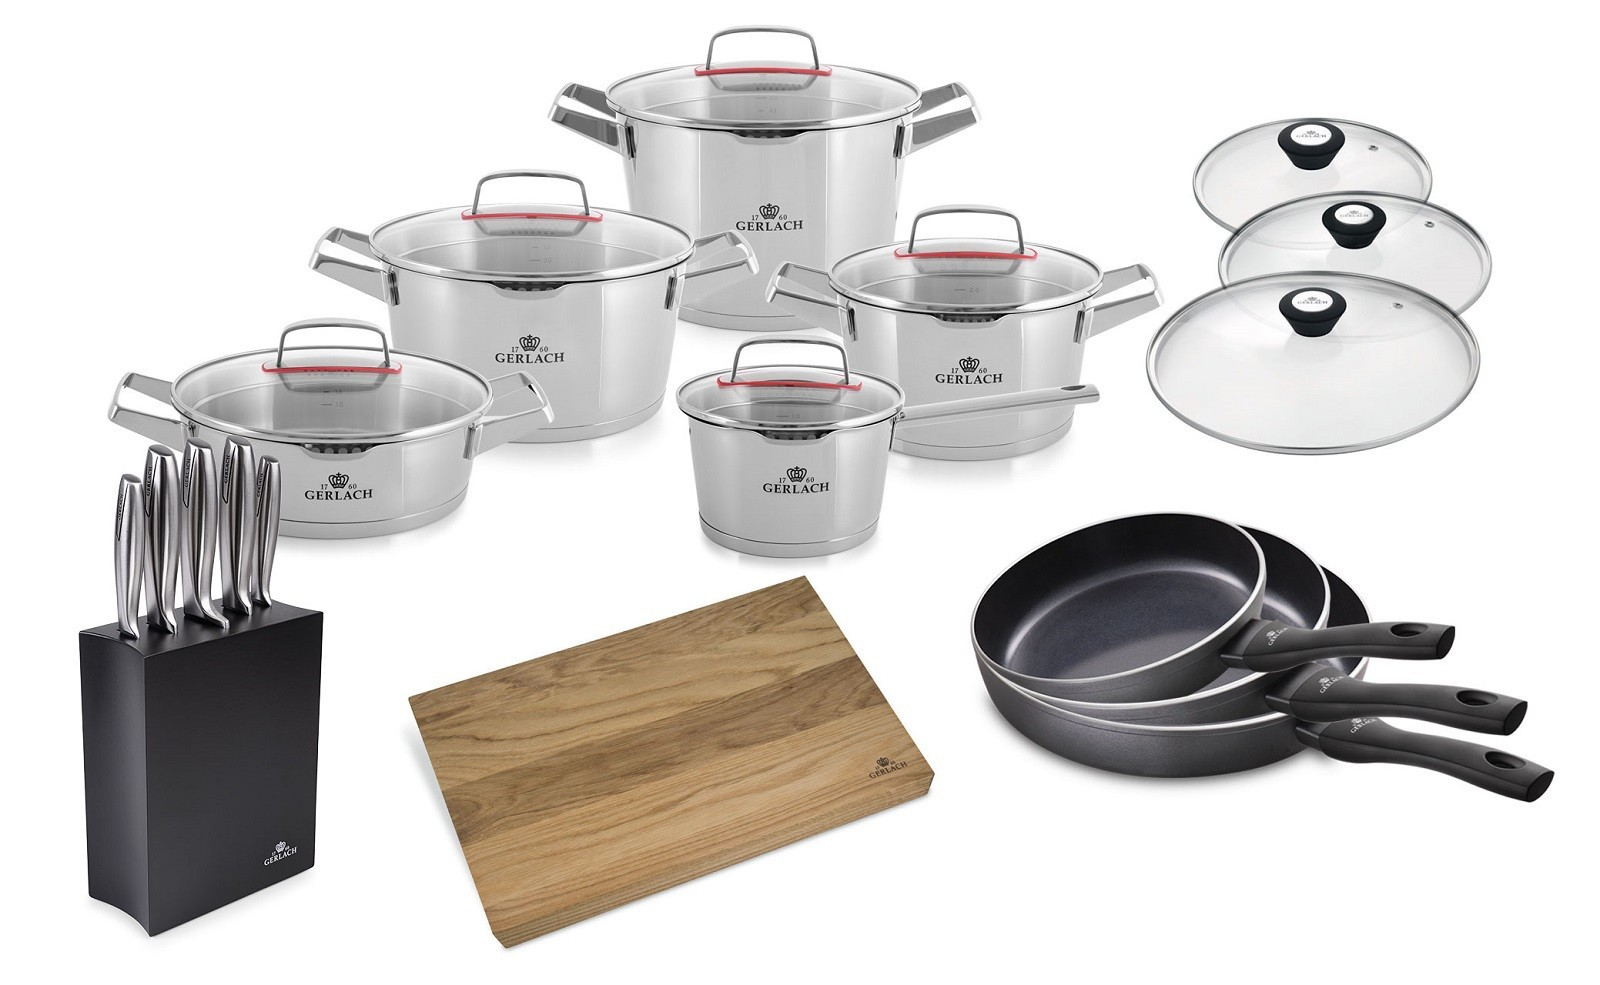 A 10-element set of pots SUPERIOR + set of knives + 3x Frying pan with lids